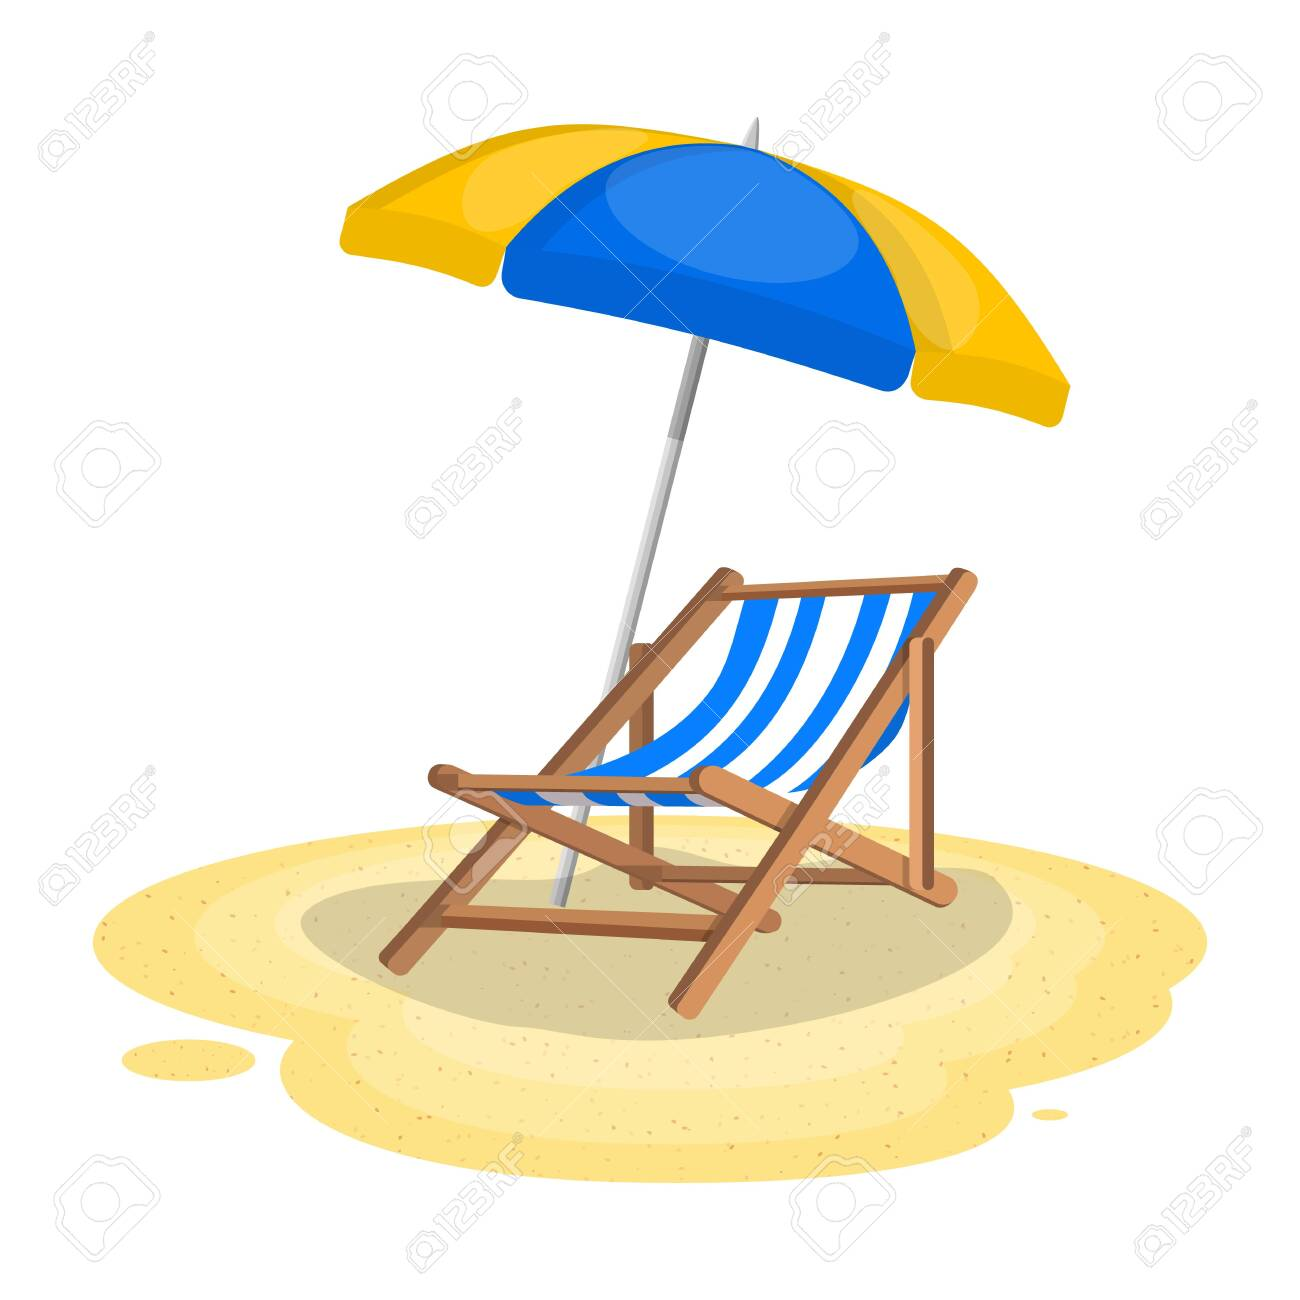 Umbrella and sun lounger on the beach. Vector illustration in flat style - 123779811